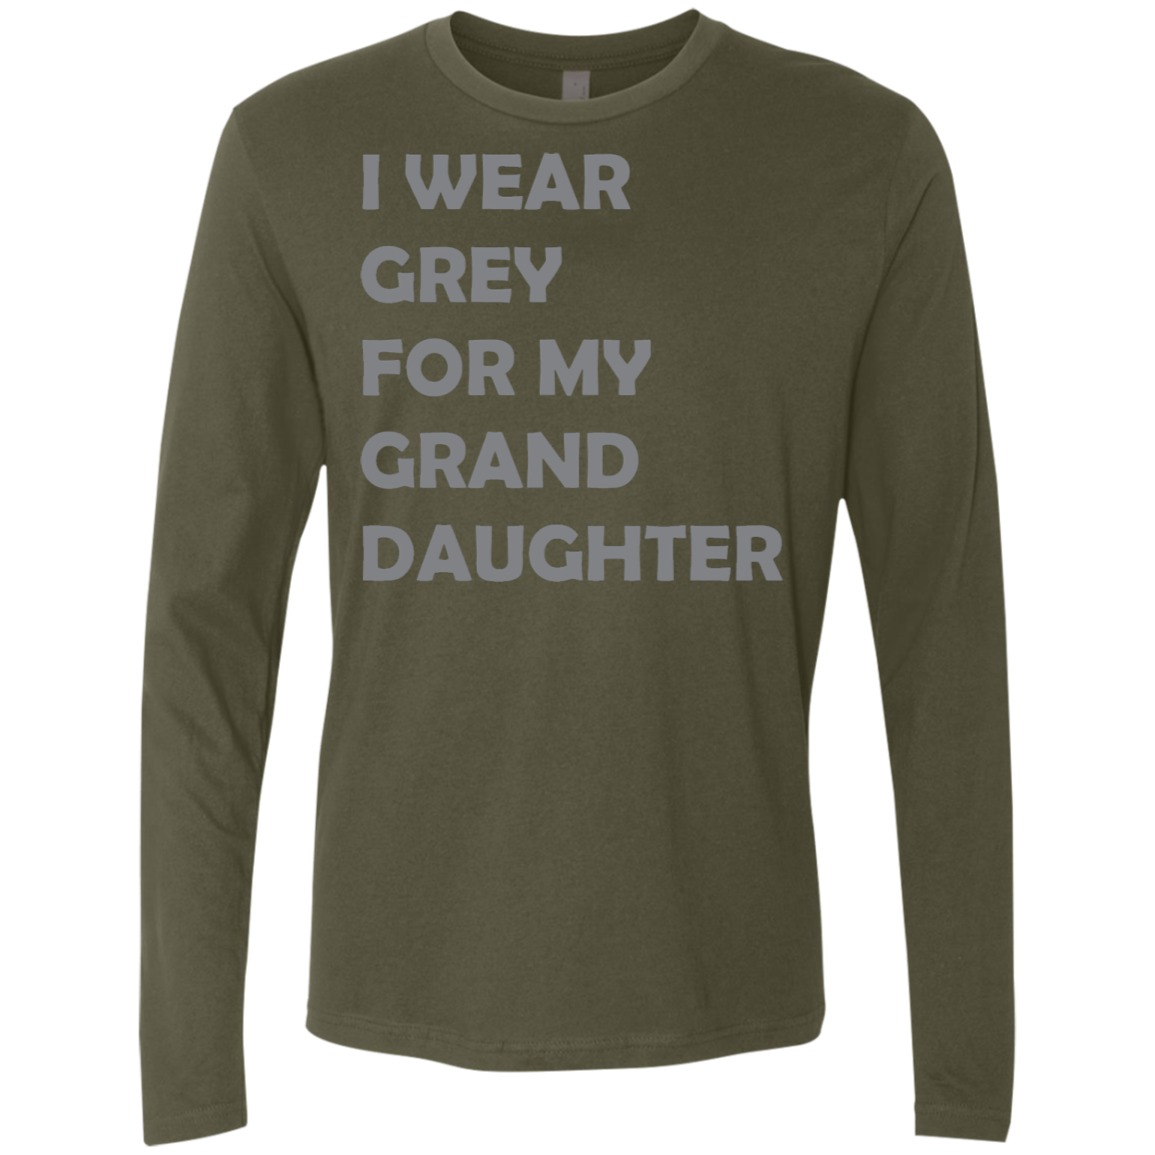 I Wear Grey For My Grand Daughter Men's Long Sleeve Tee